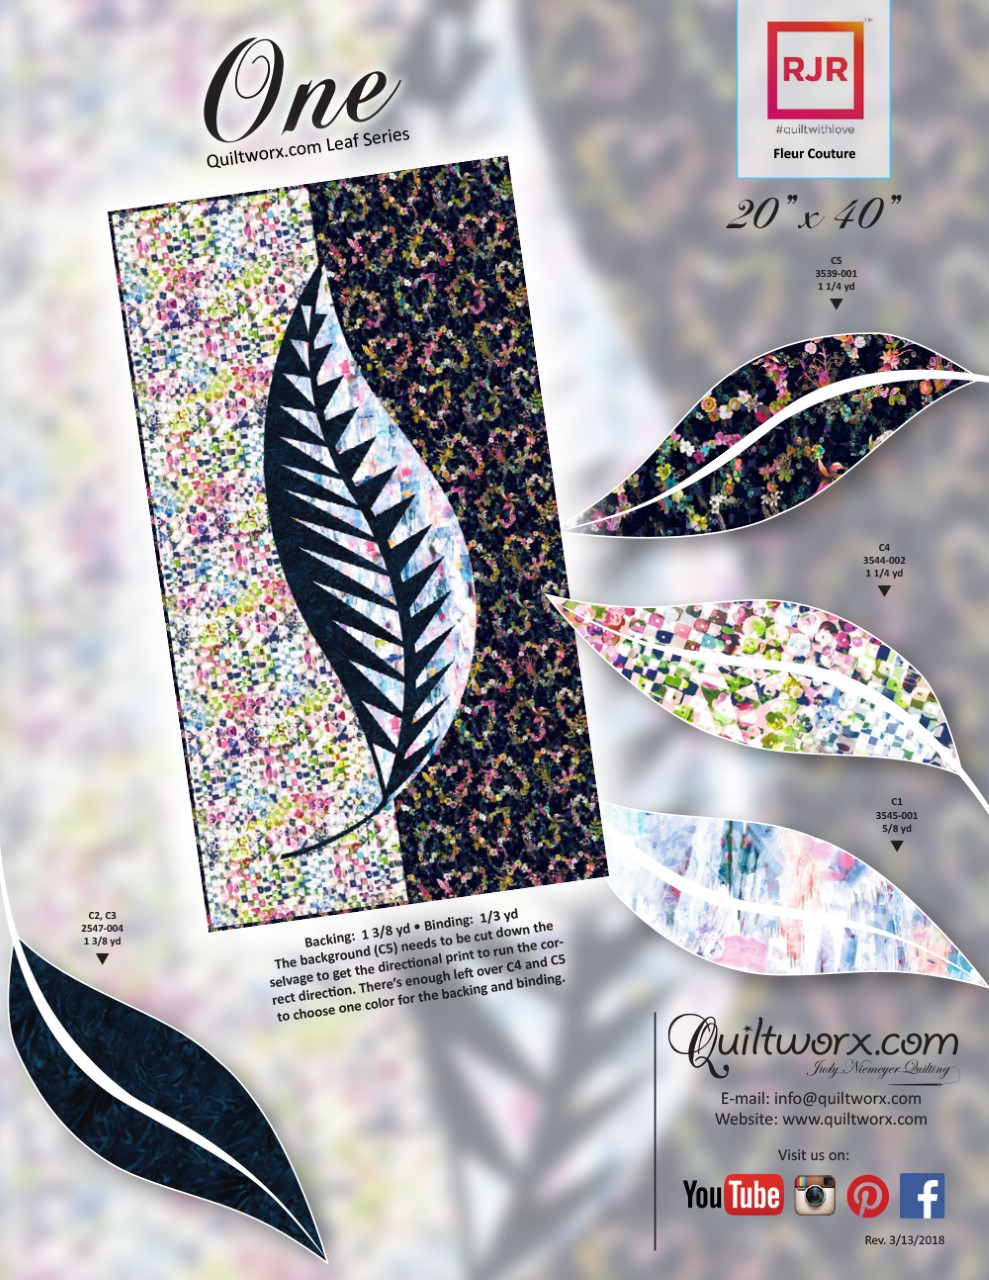 thumbnail_One-Leaf-Series-RJR-Fleur-Couture-1pg-KS